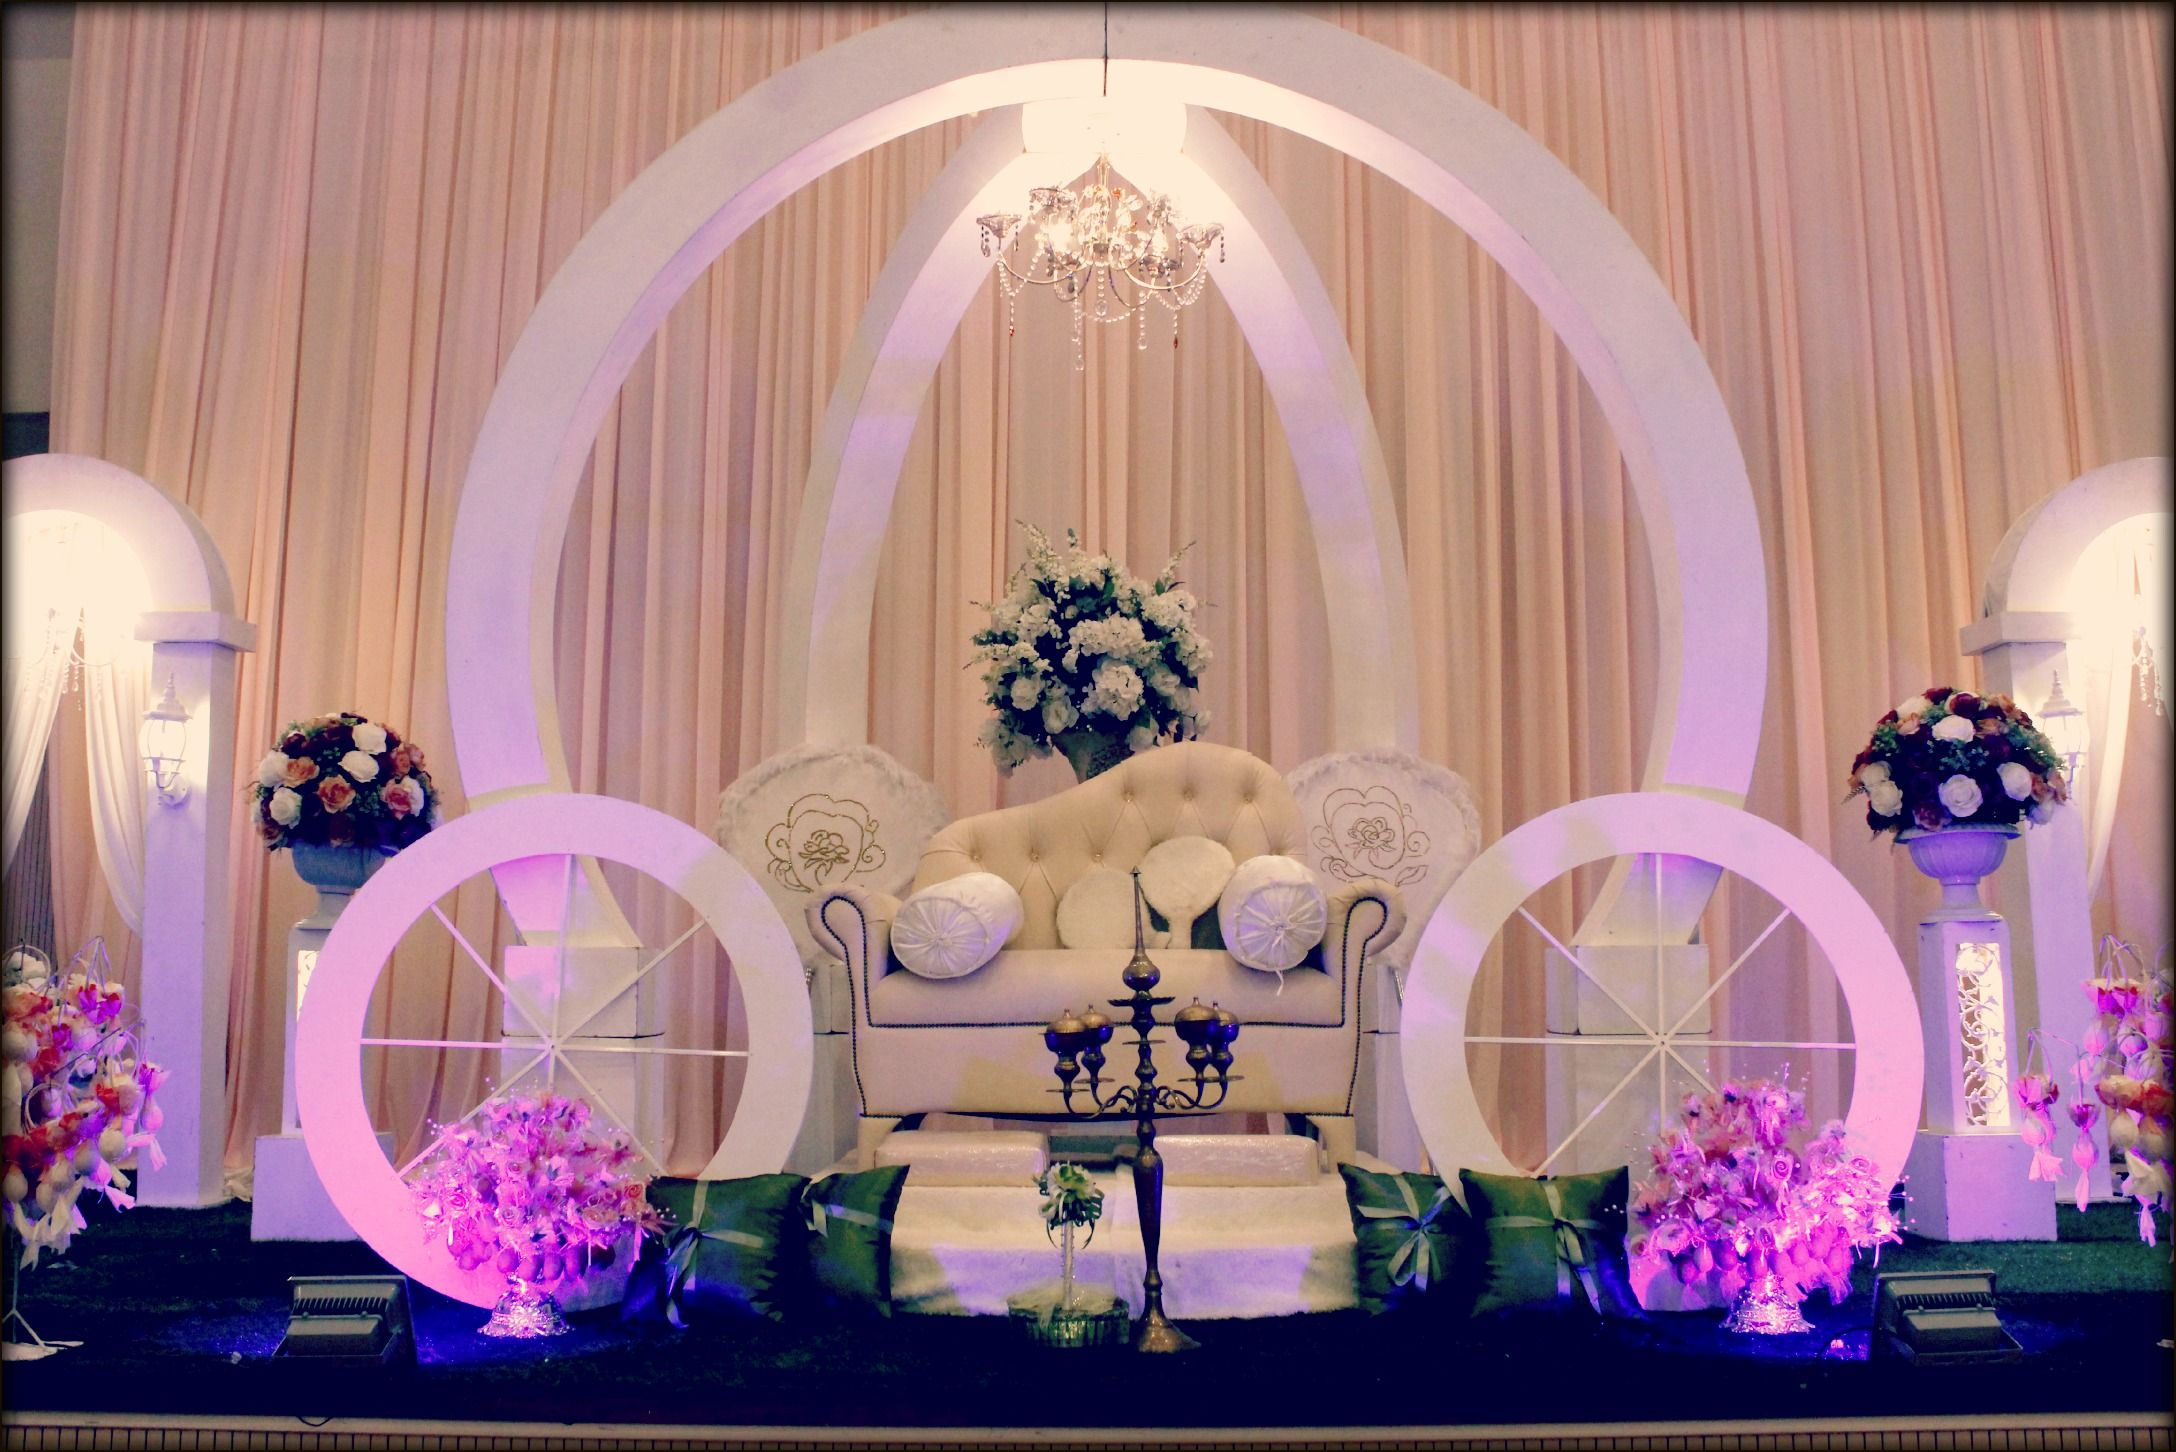 Nigerian wedding stage decoration  wedding stage pelamin  jasonpreena  Pinterest  Wedding stage